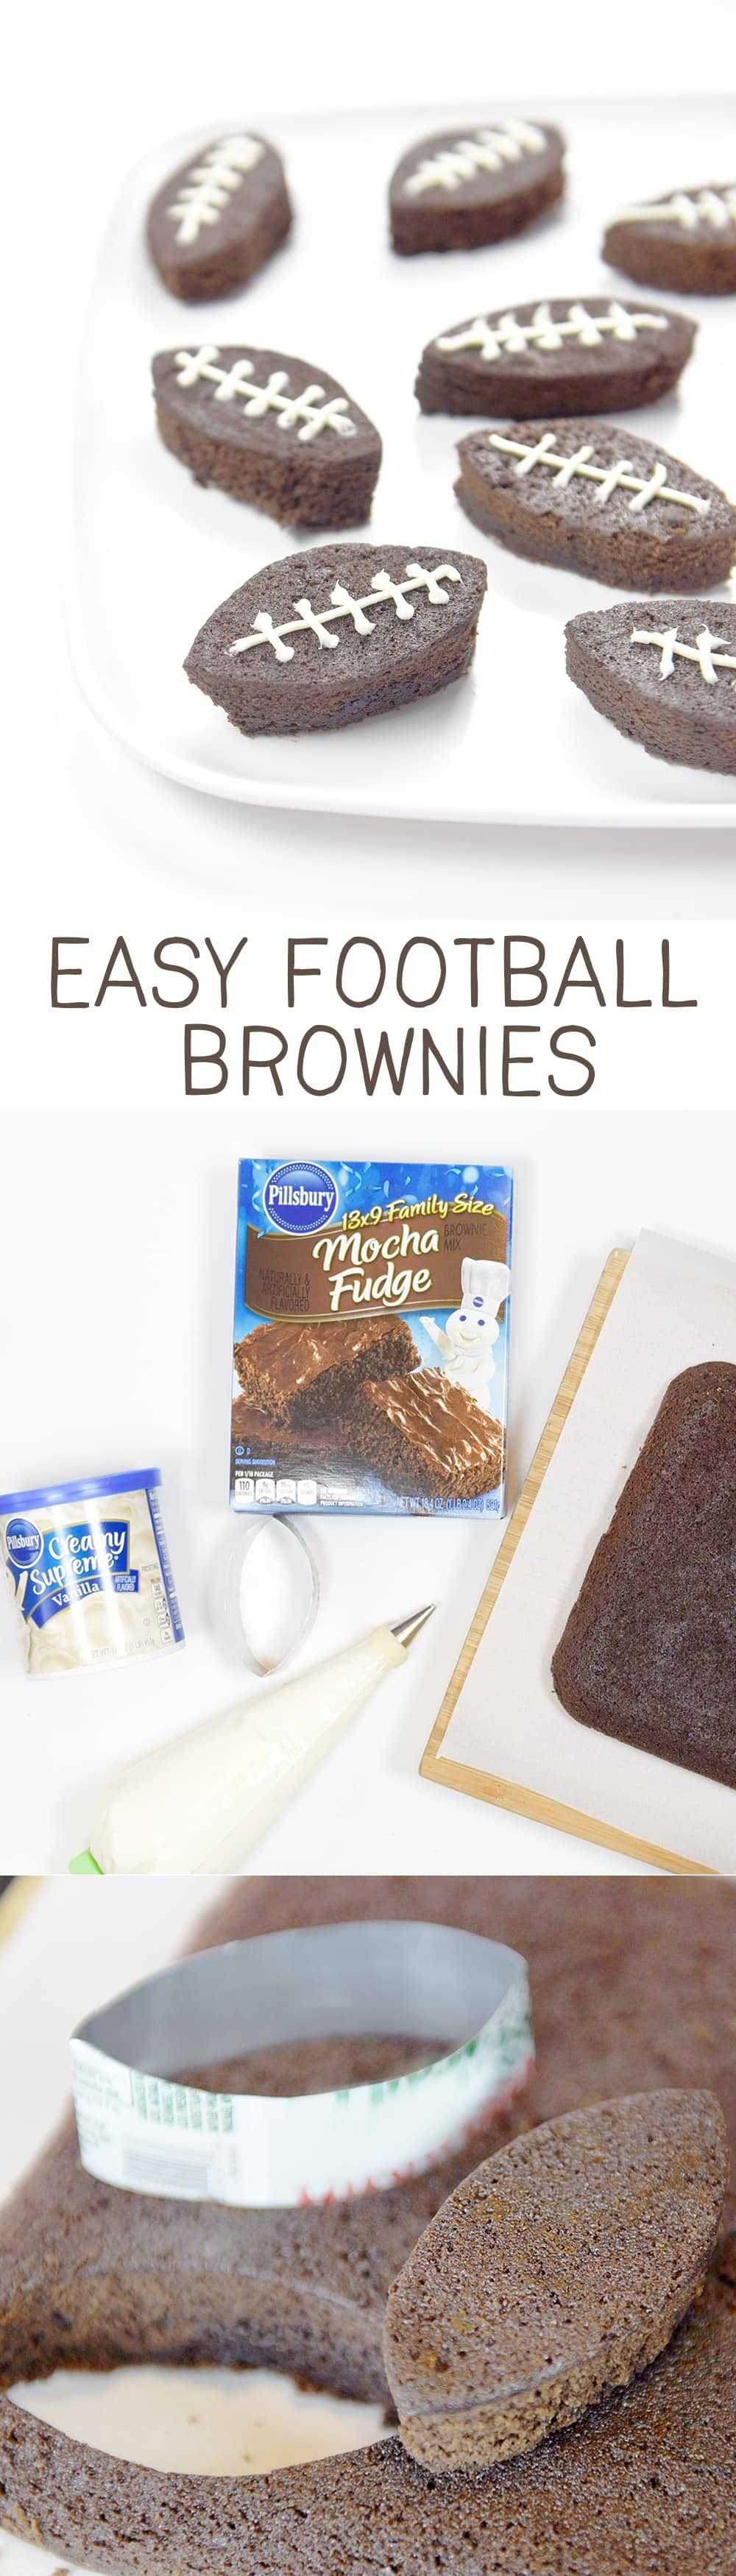 Easy Football Brownies for gameday!!  So cute and easily made with a soda pop can as the cookie cutter!